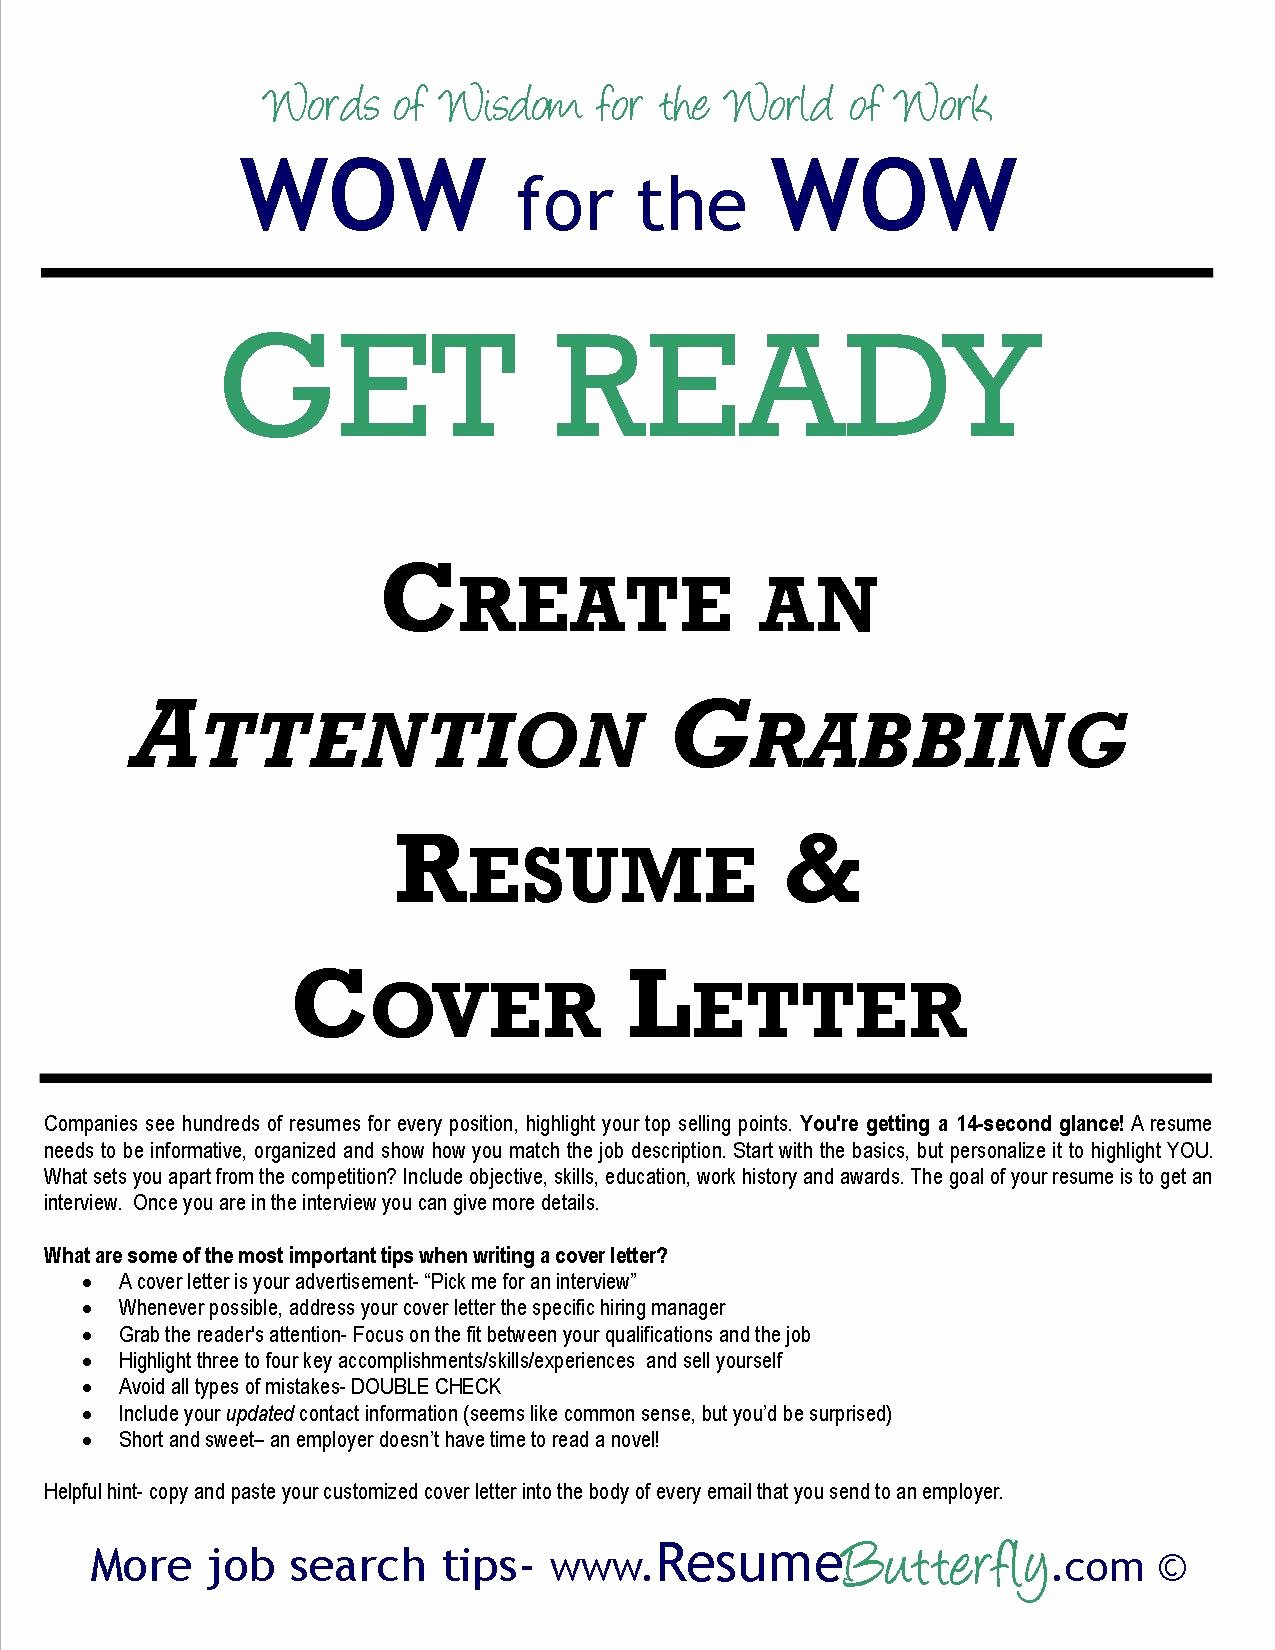 Email Cover Letter for Resume Unique Create An attention Grabbing Resume & Cover Letter